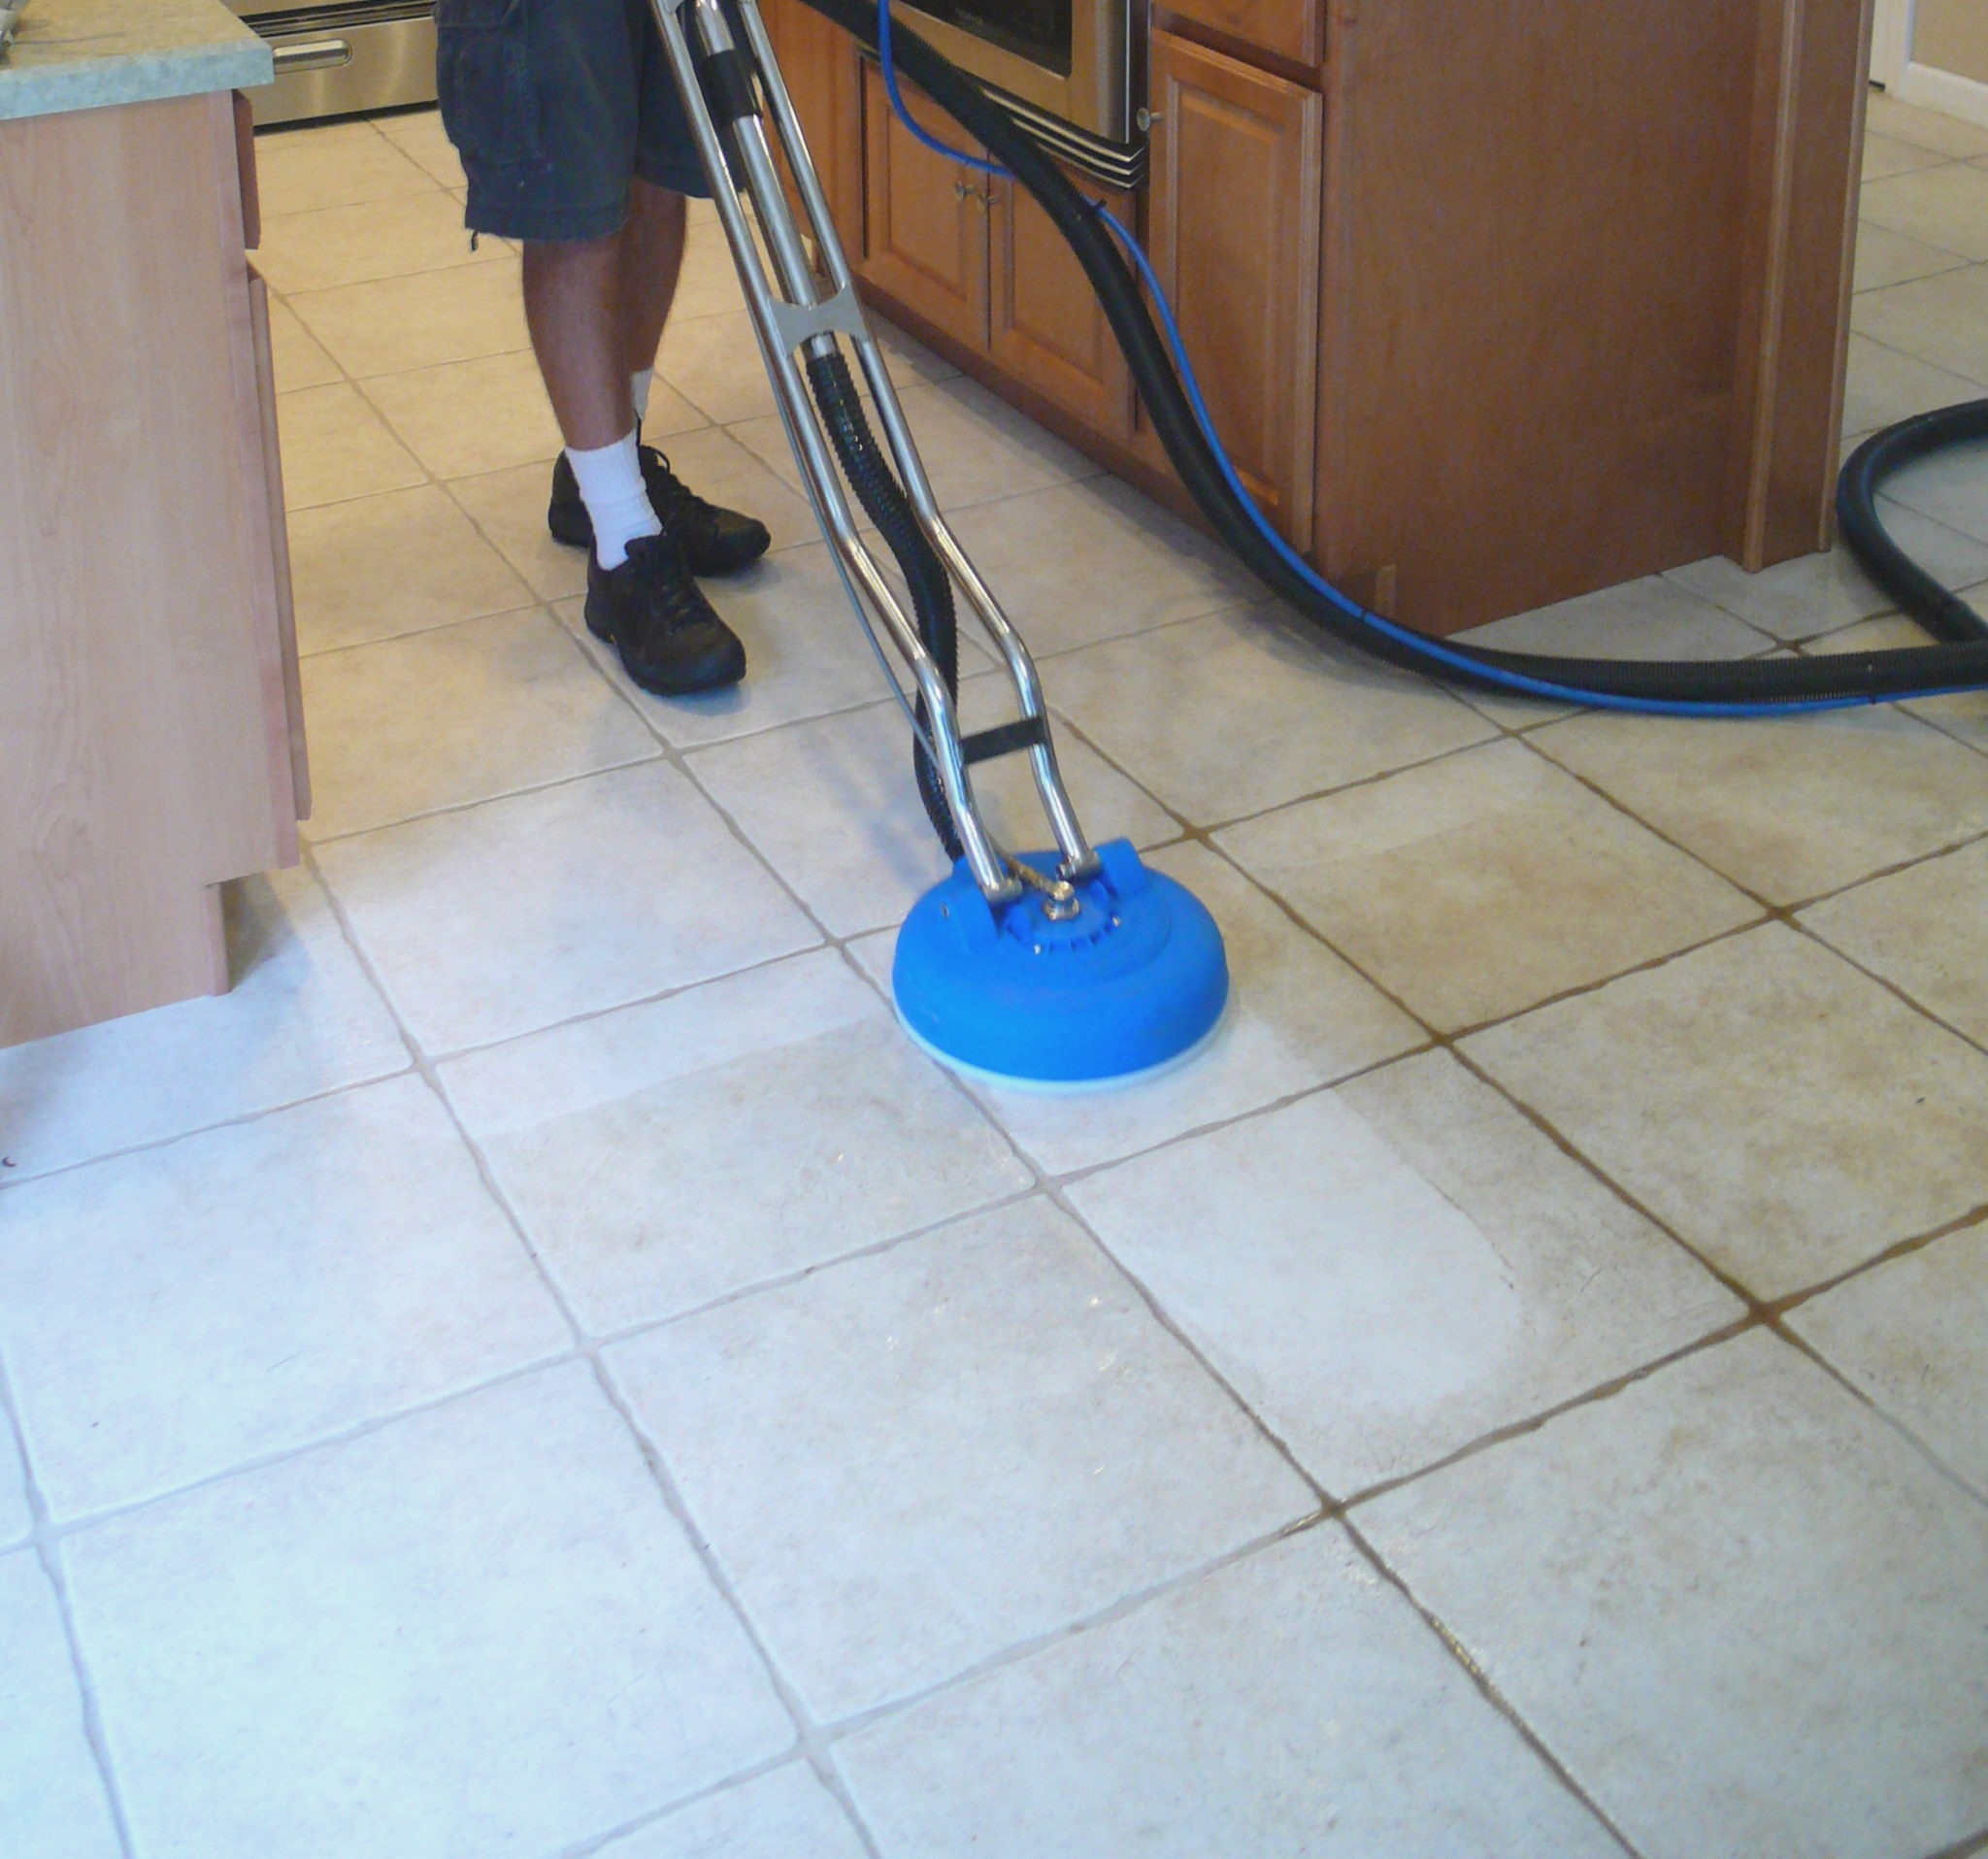 tile-and-grout-cleaning-how-to-clean-dirty-grout-in-tiled-floor ...